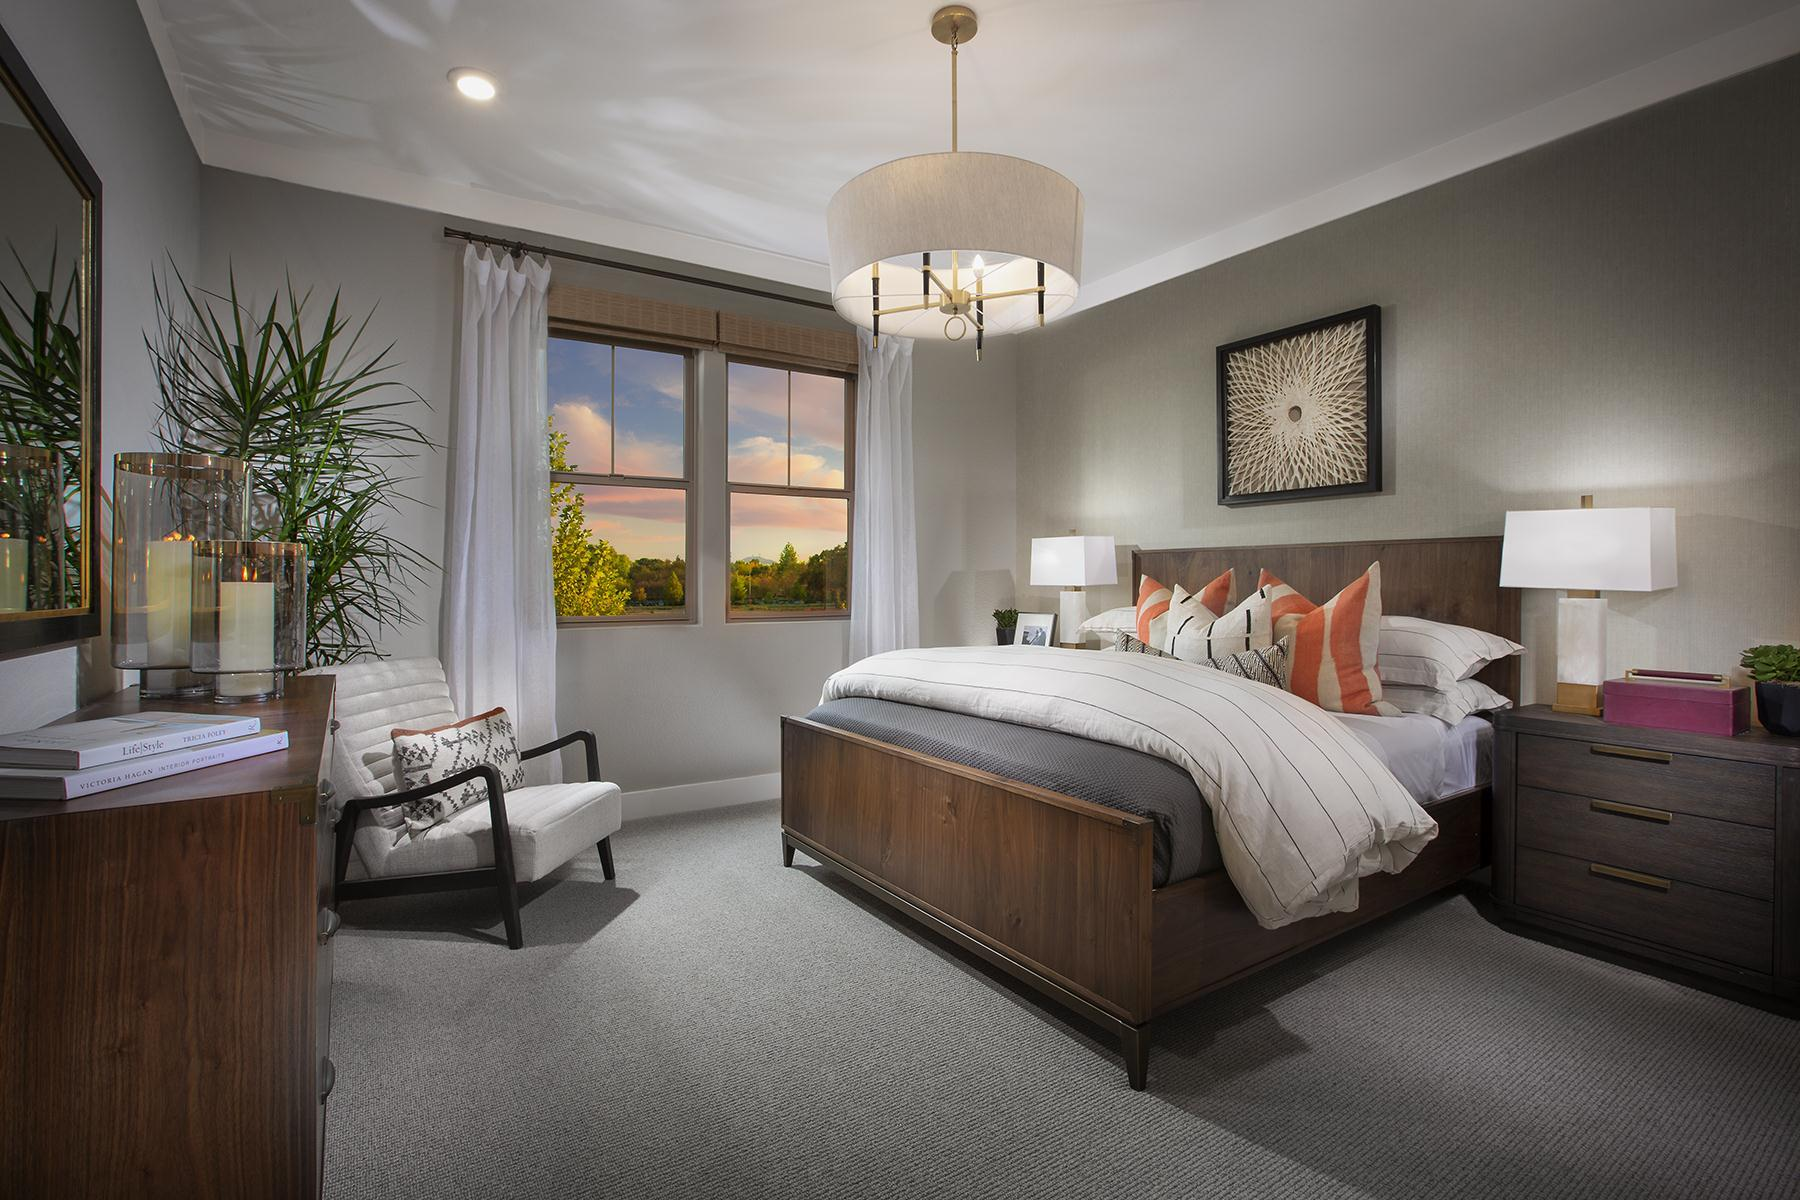 Bedroom featured in the Plan 5 By The New Home Company in Sacramento, CA